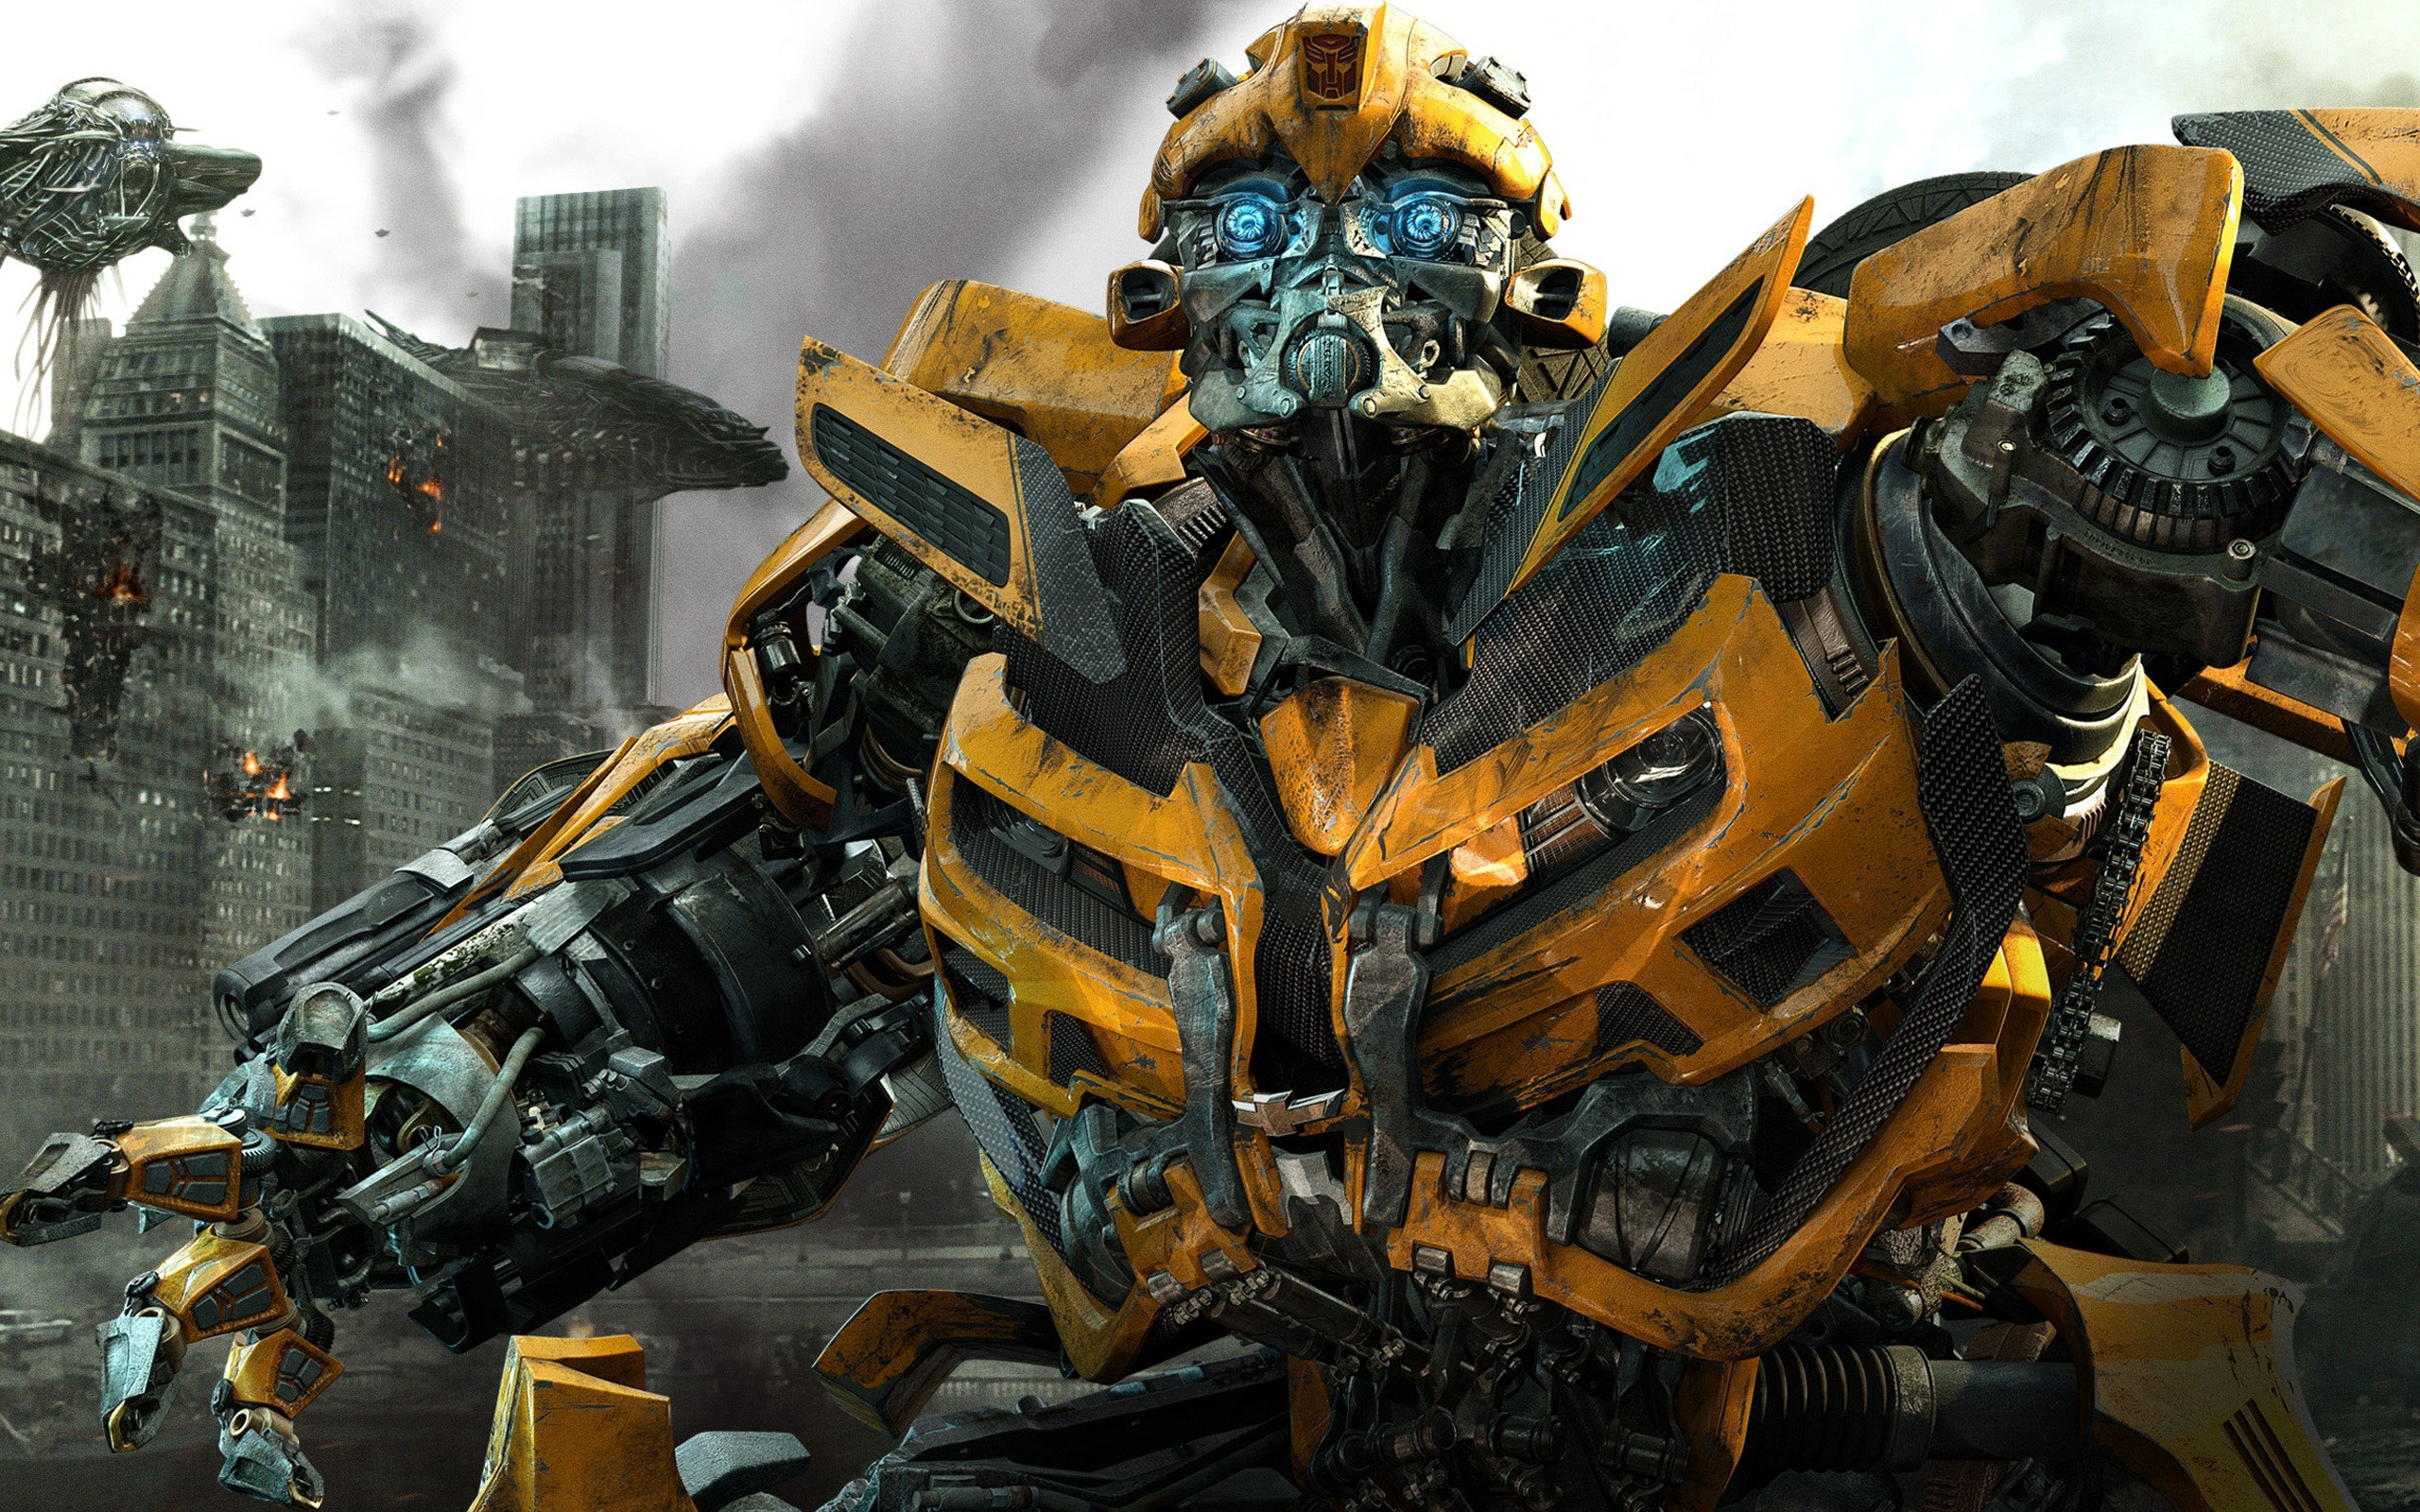 Res: 2560x1600, Bumblebee in Transformers 3